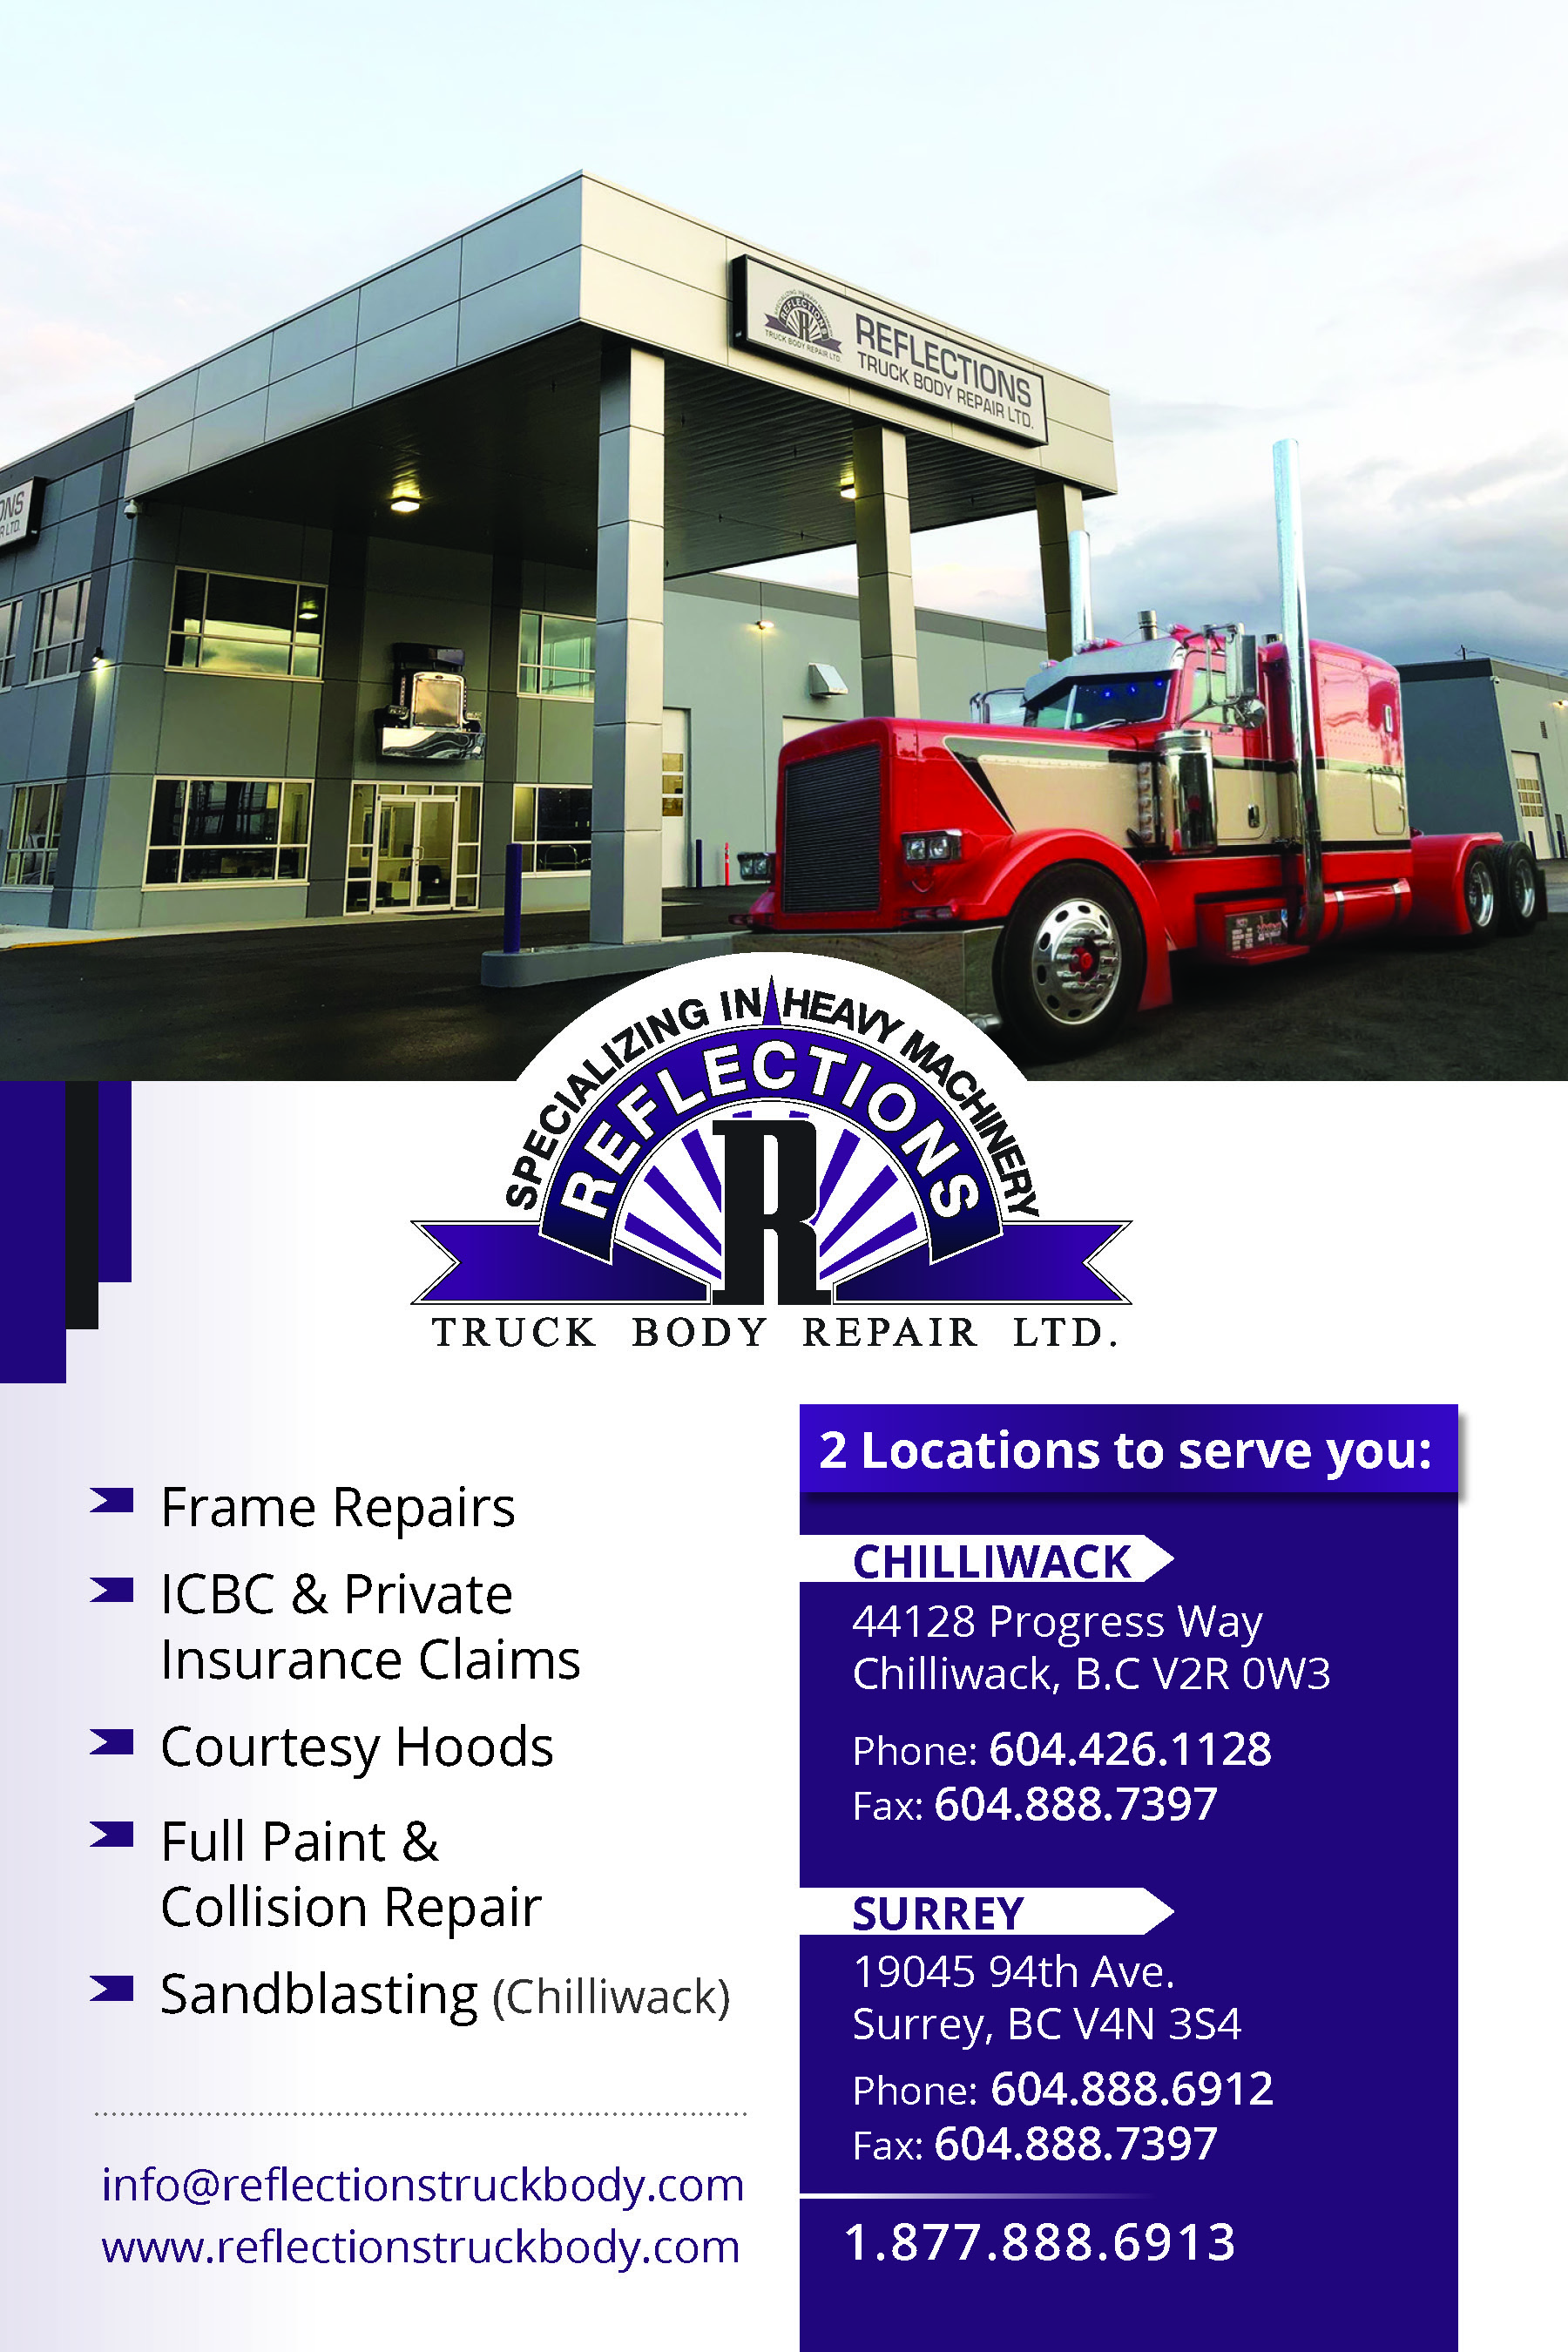 reflections-truck-body-repair-ltd-wcyRvLa.jpeg